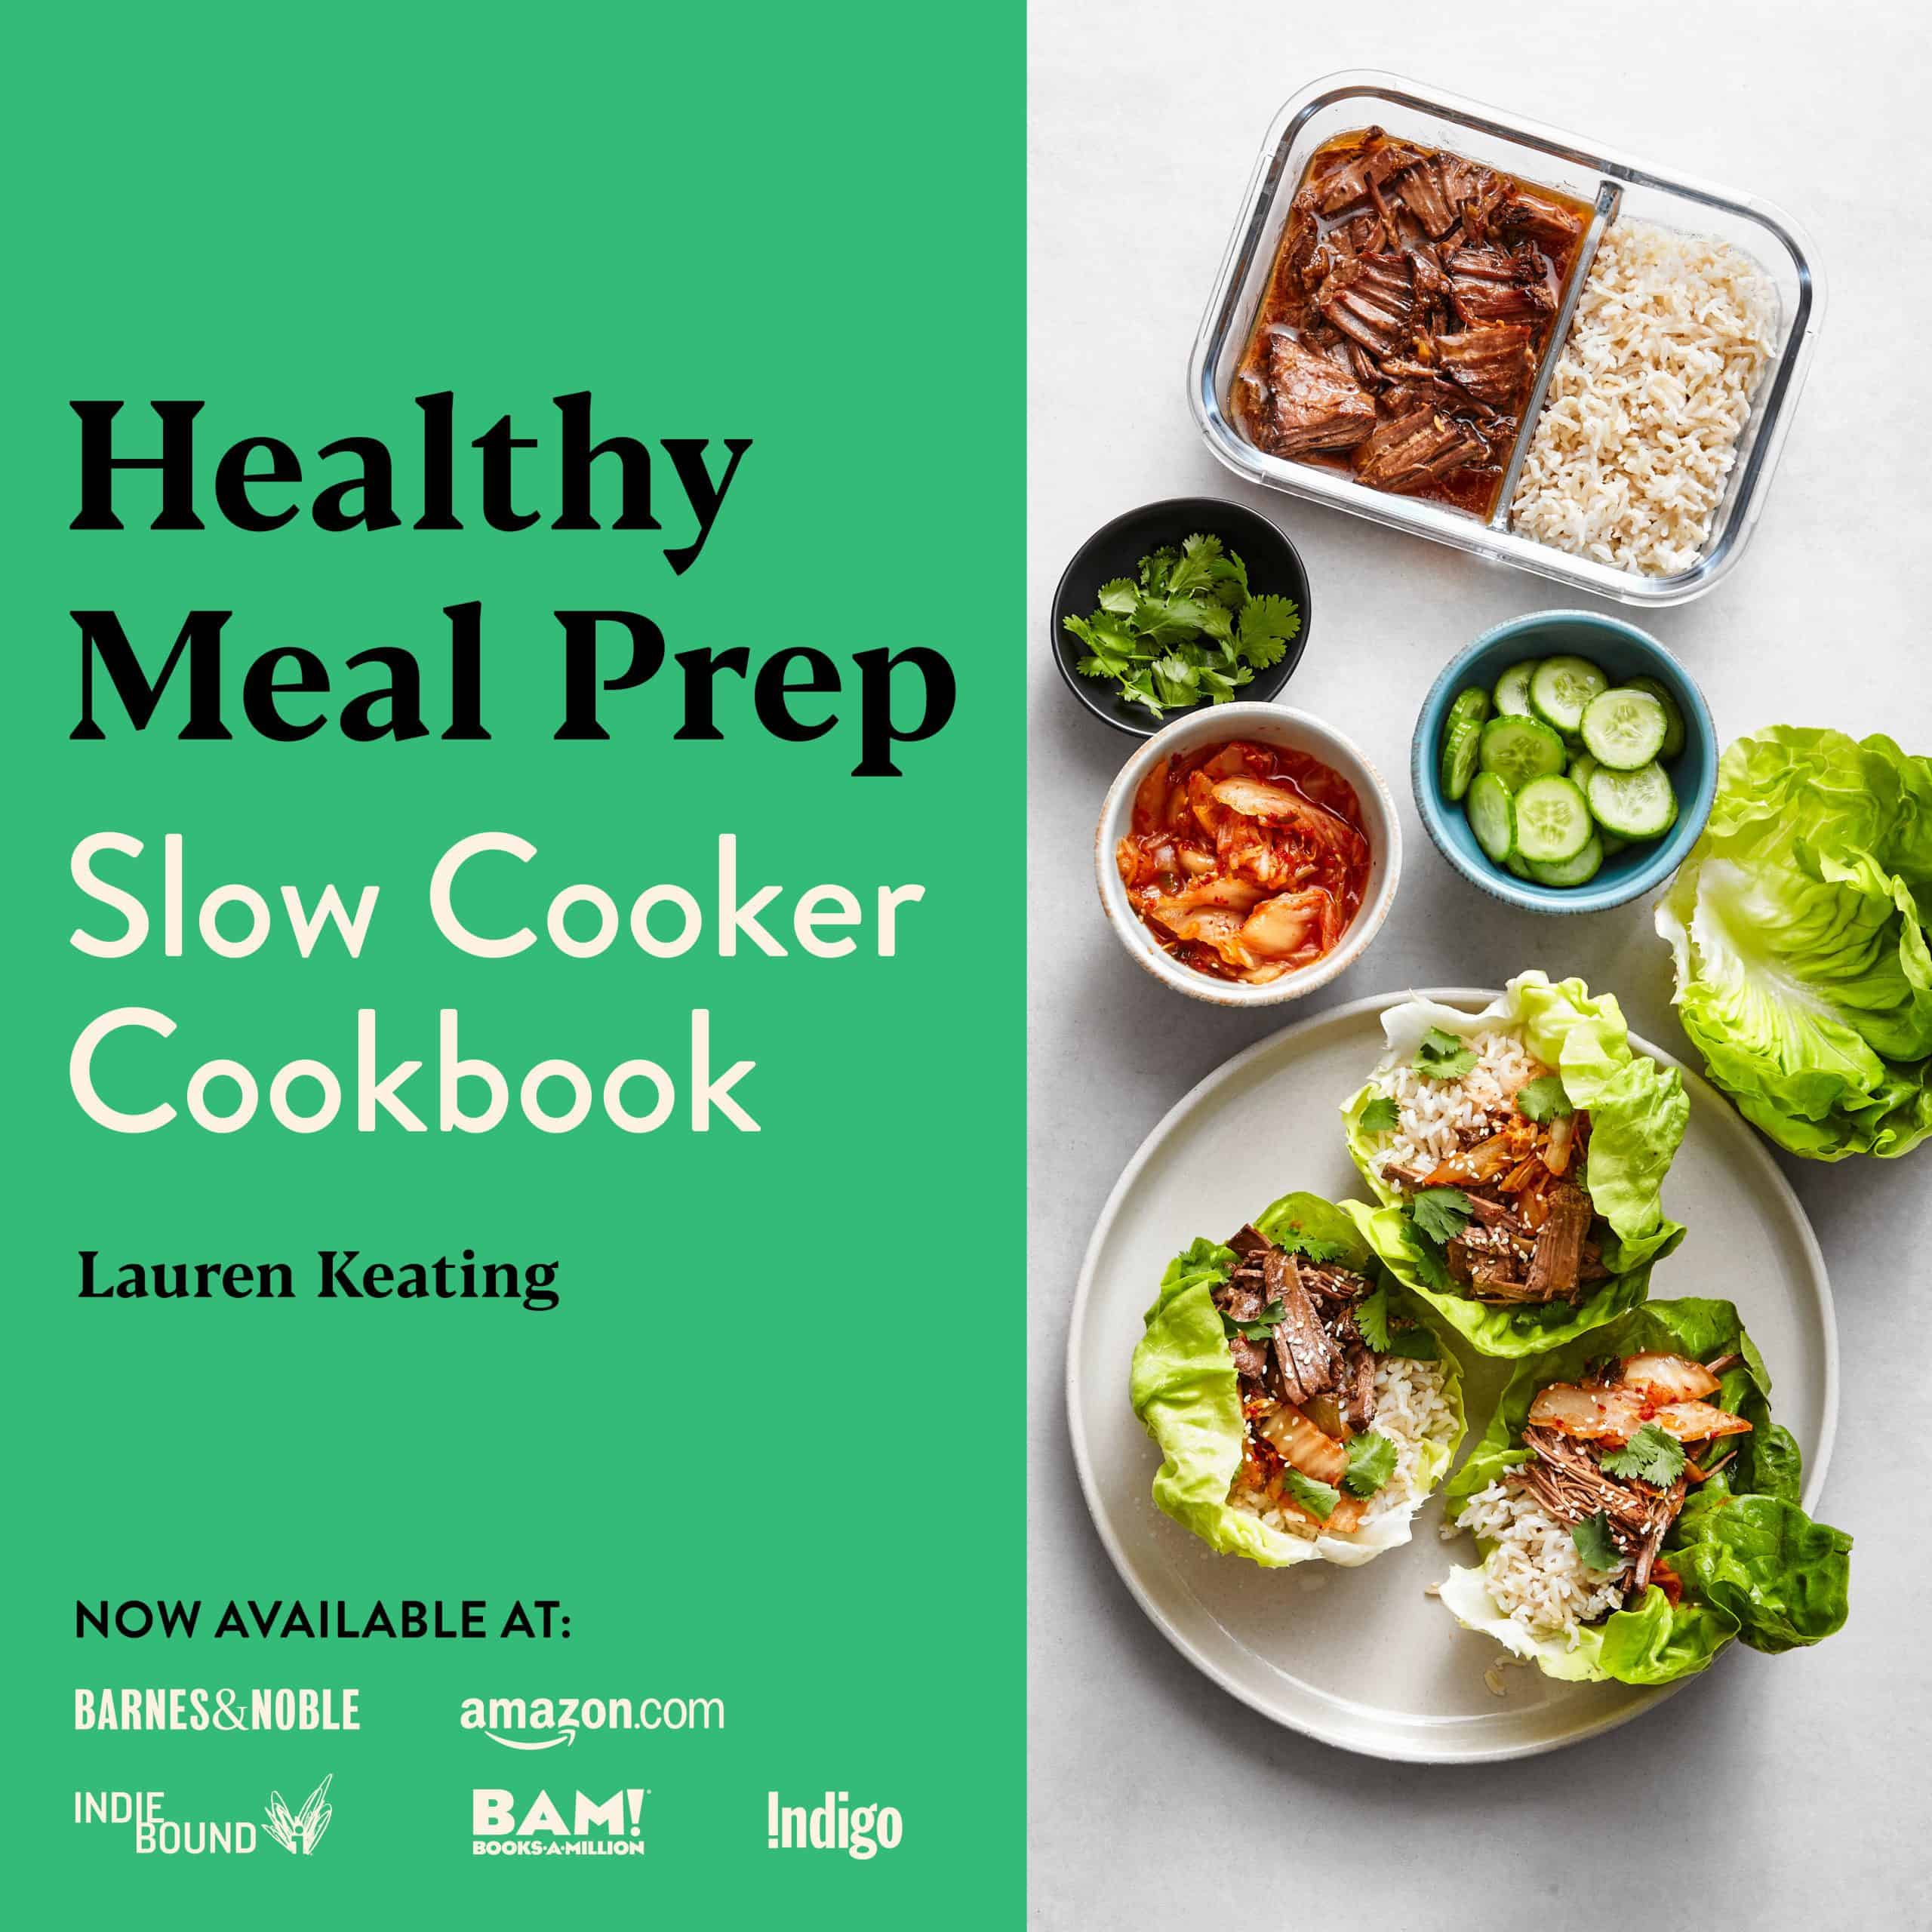 Healthy Meal Prep Slow Cooker Cookbook